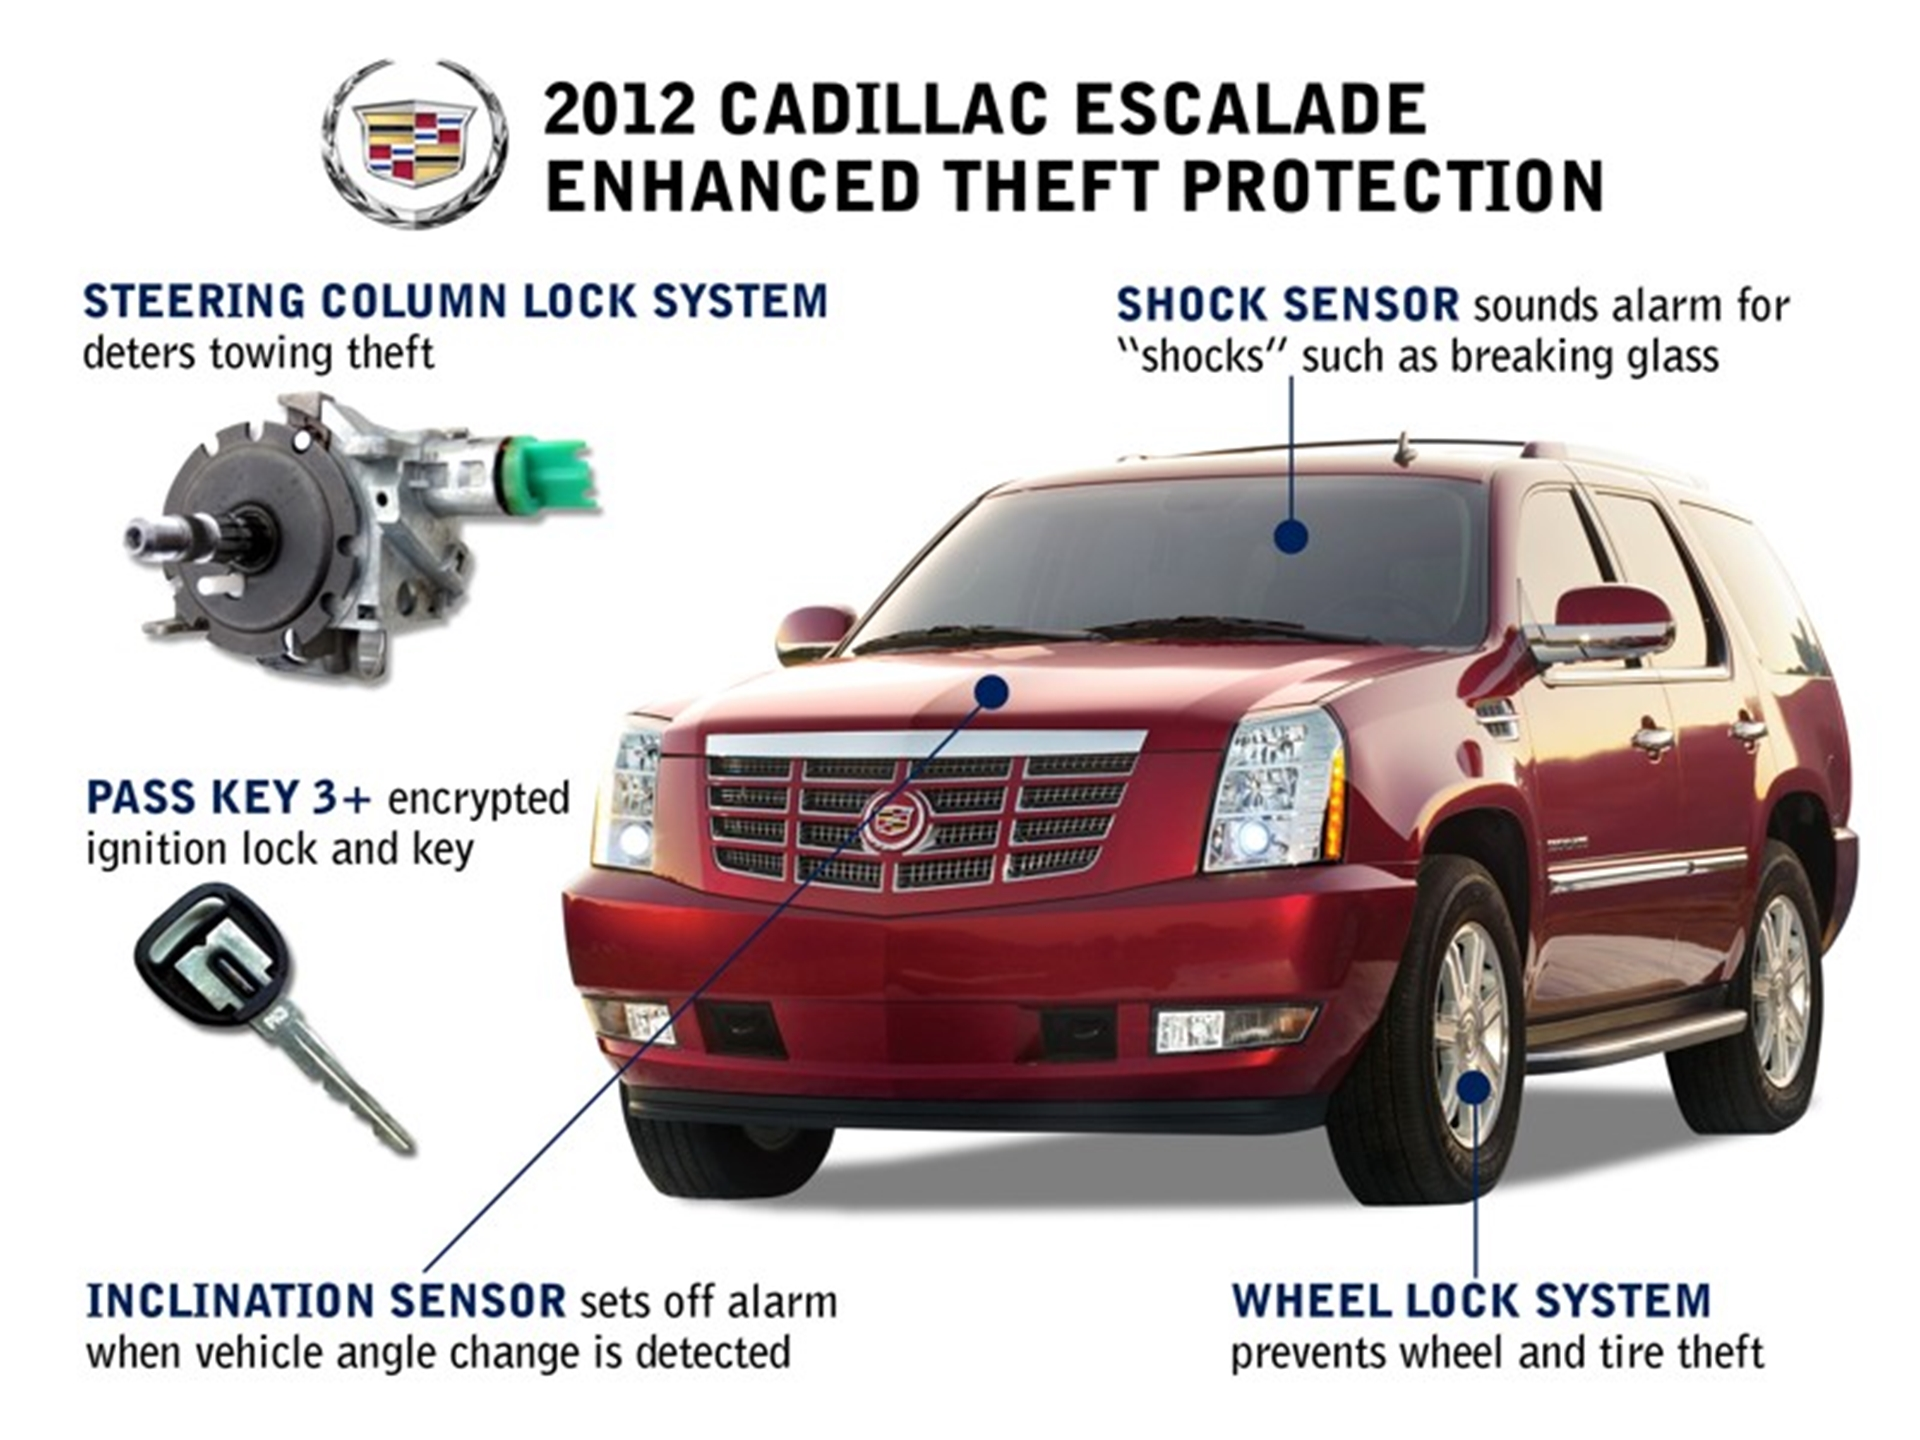 Cadillac Escalade Security